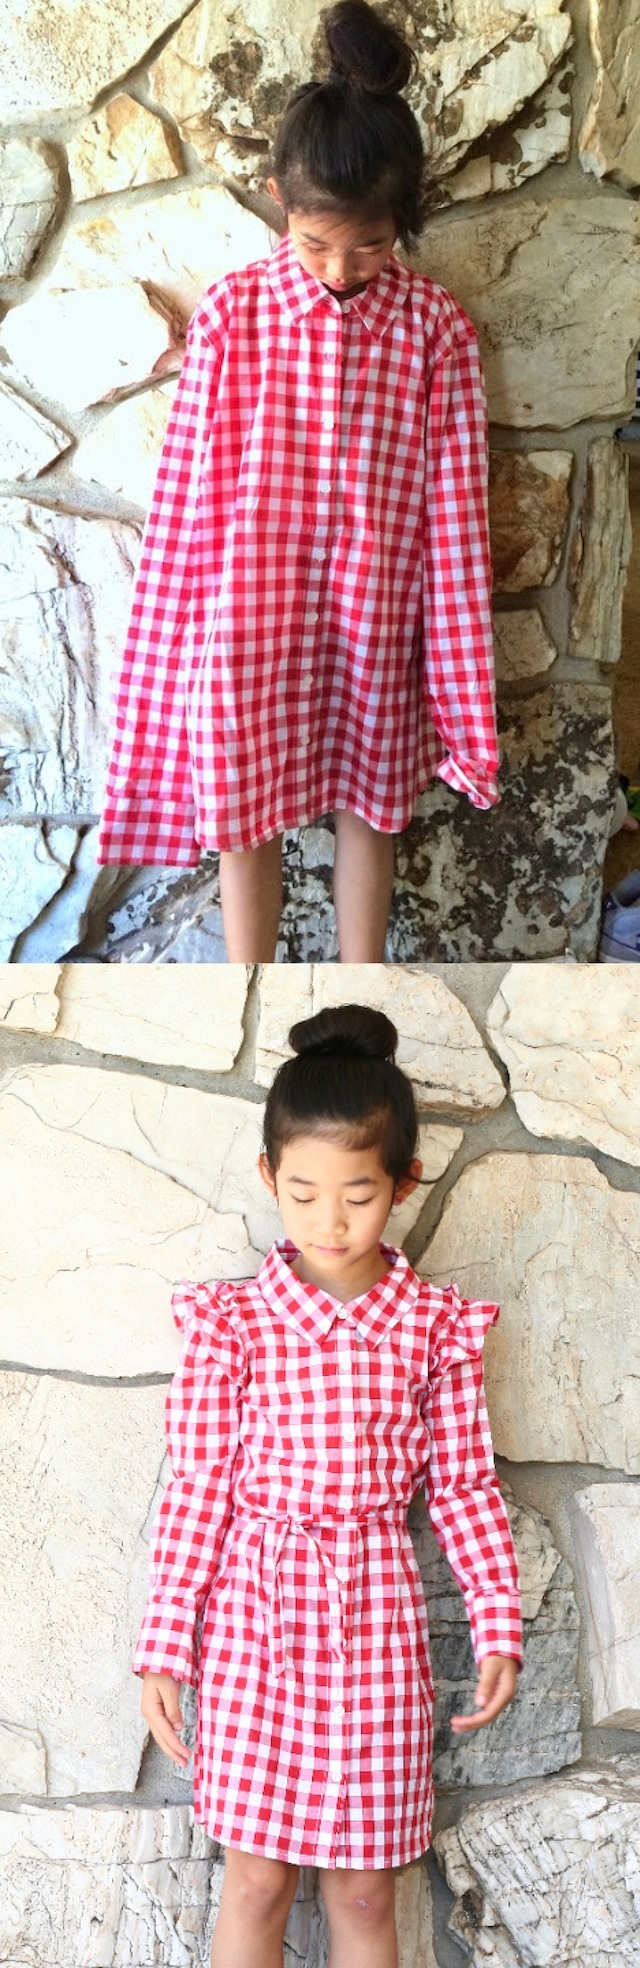 Turn an XL Woman's Shirt into a Girl's Dress